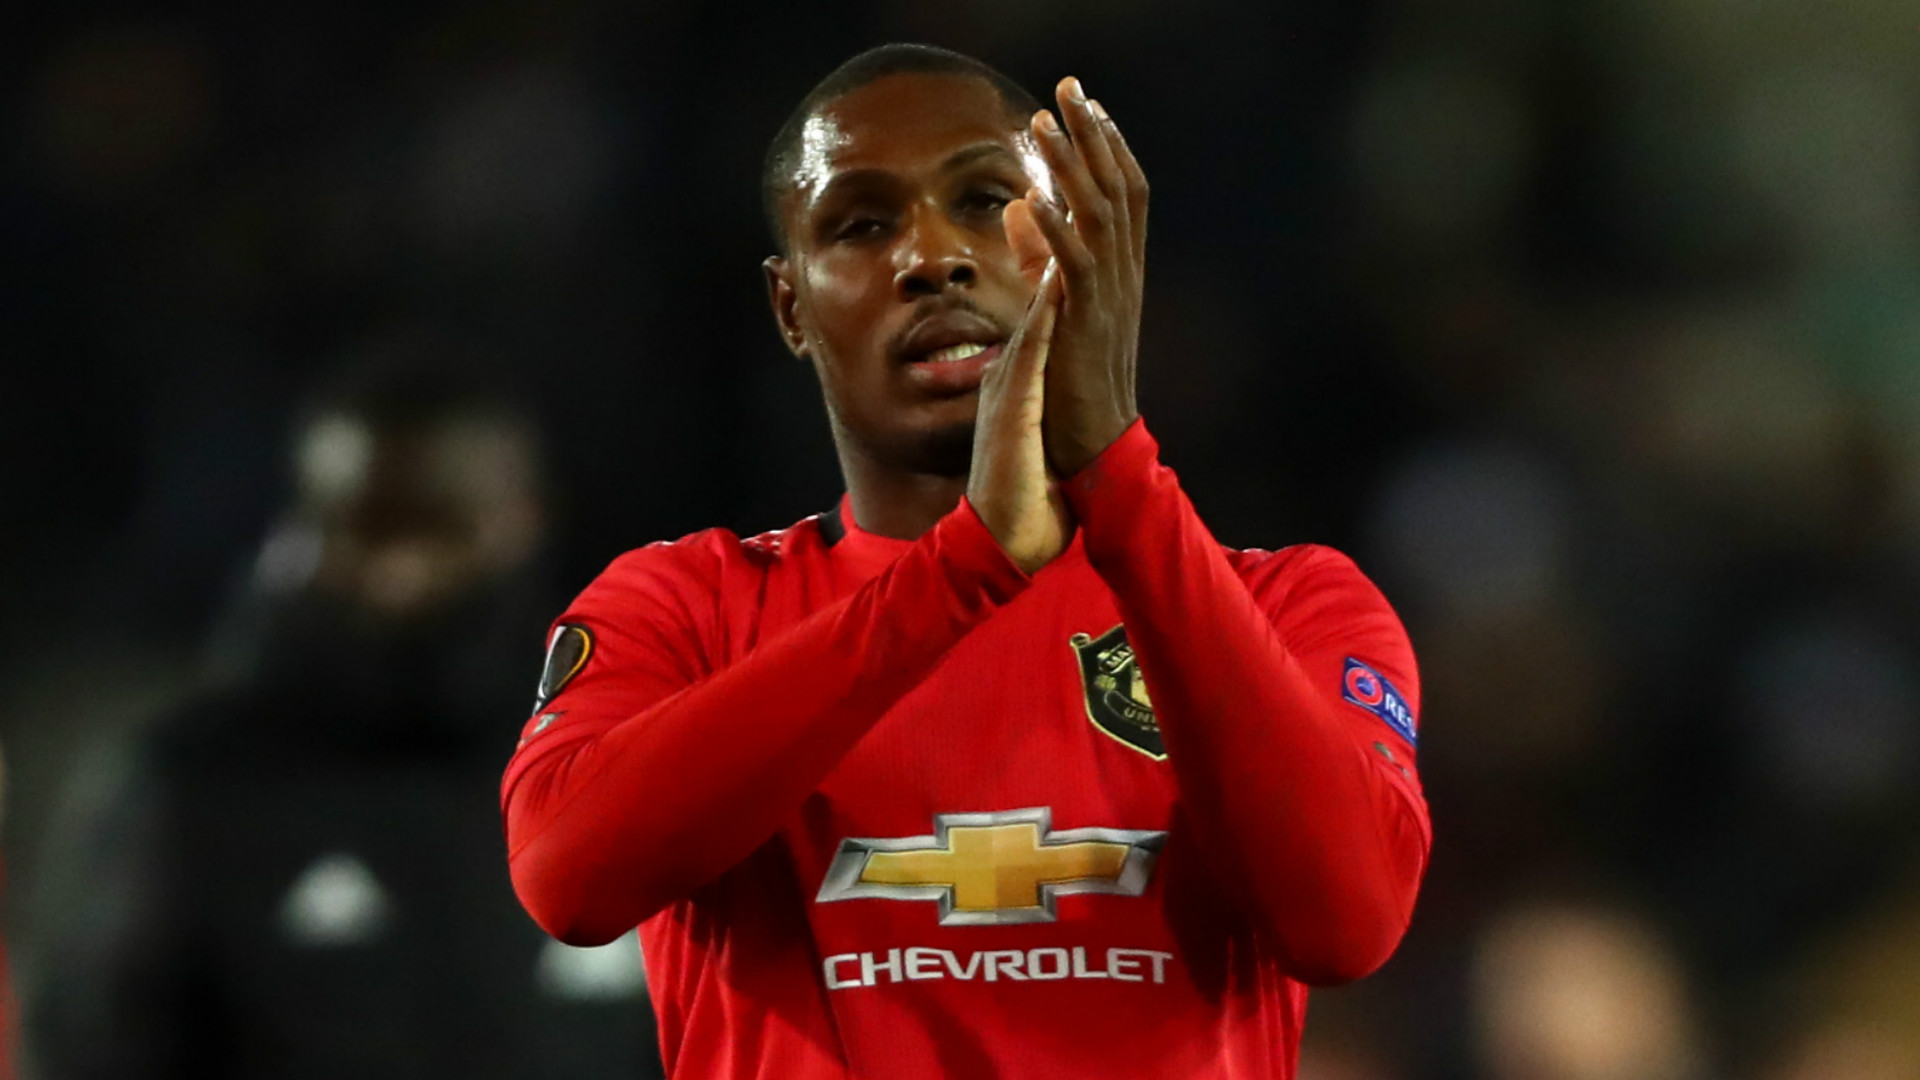 Ighalo's first Manchester United goal sends Twitter into meltdown